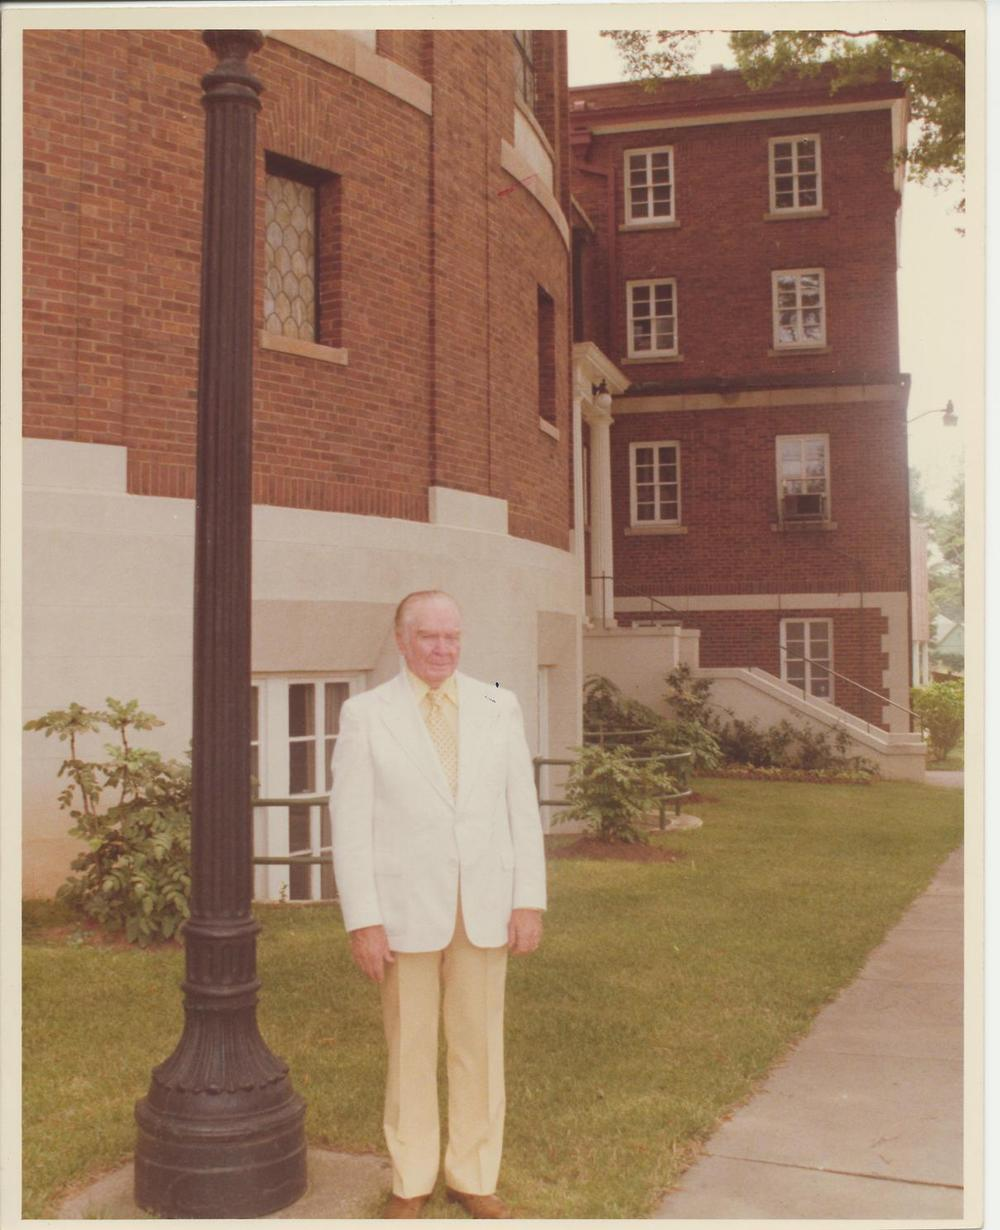 George+Upchurch+beside+old+sanctuary+c.+late+1970's.jpg